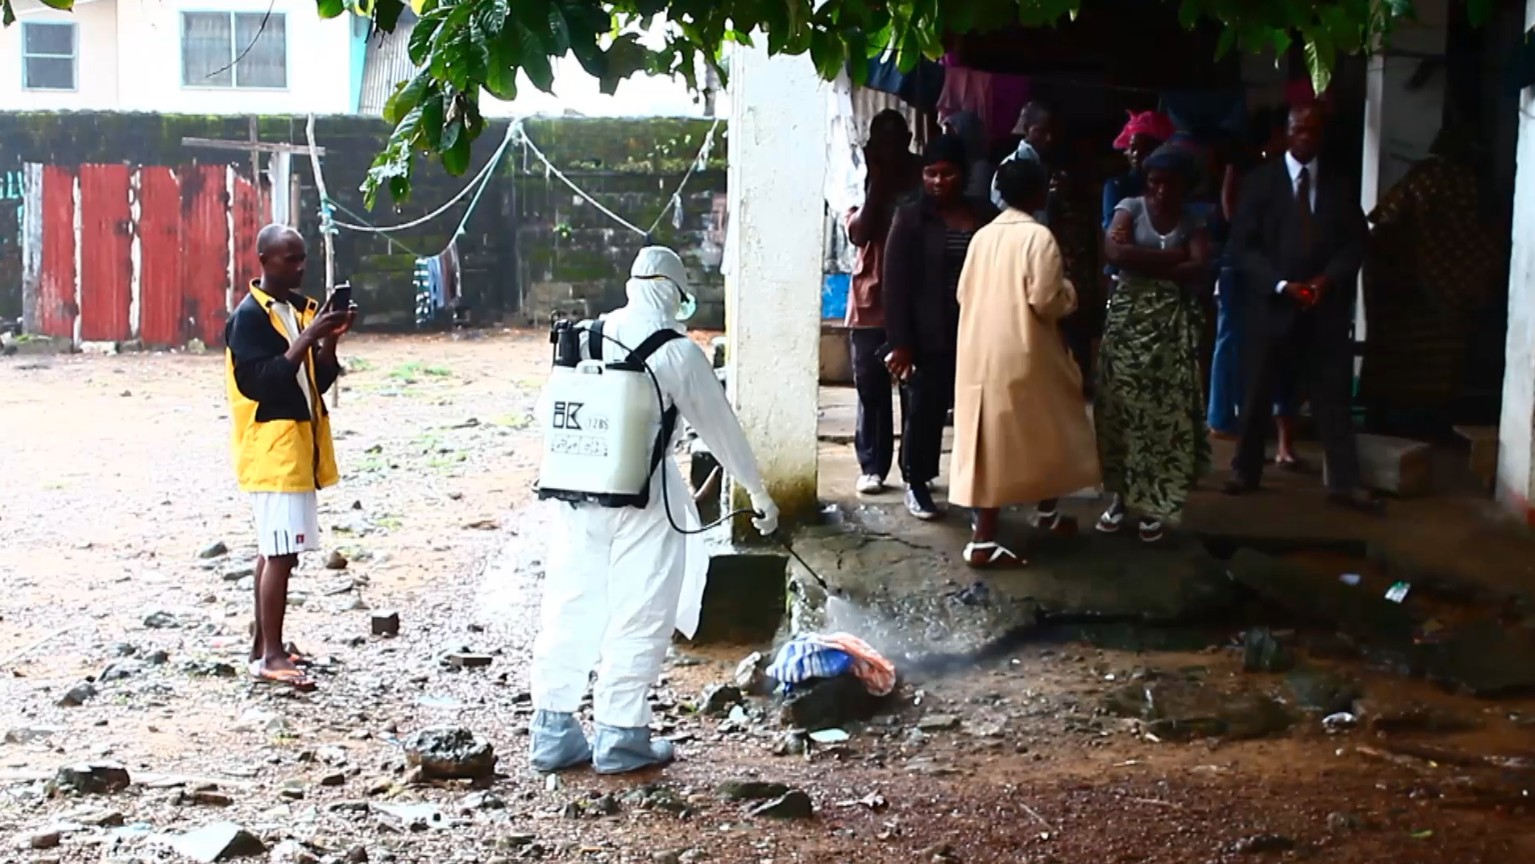 Concern Grows Over Spread of Ebola in Liberia: This Just In